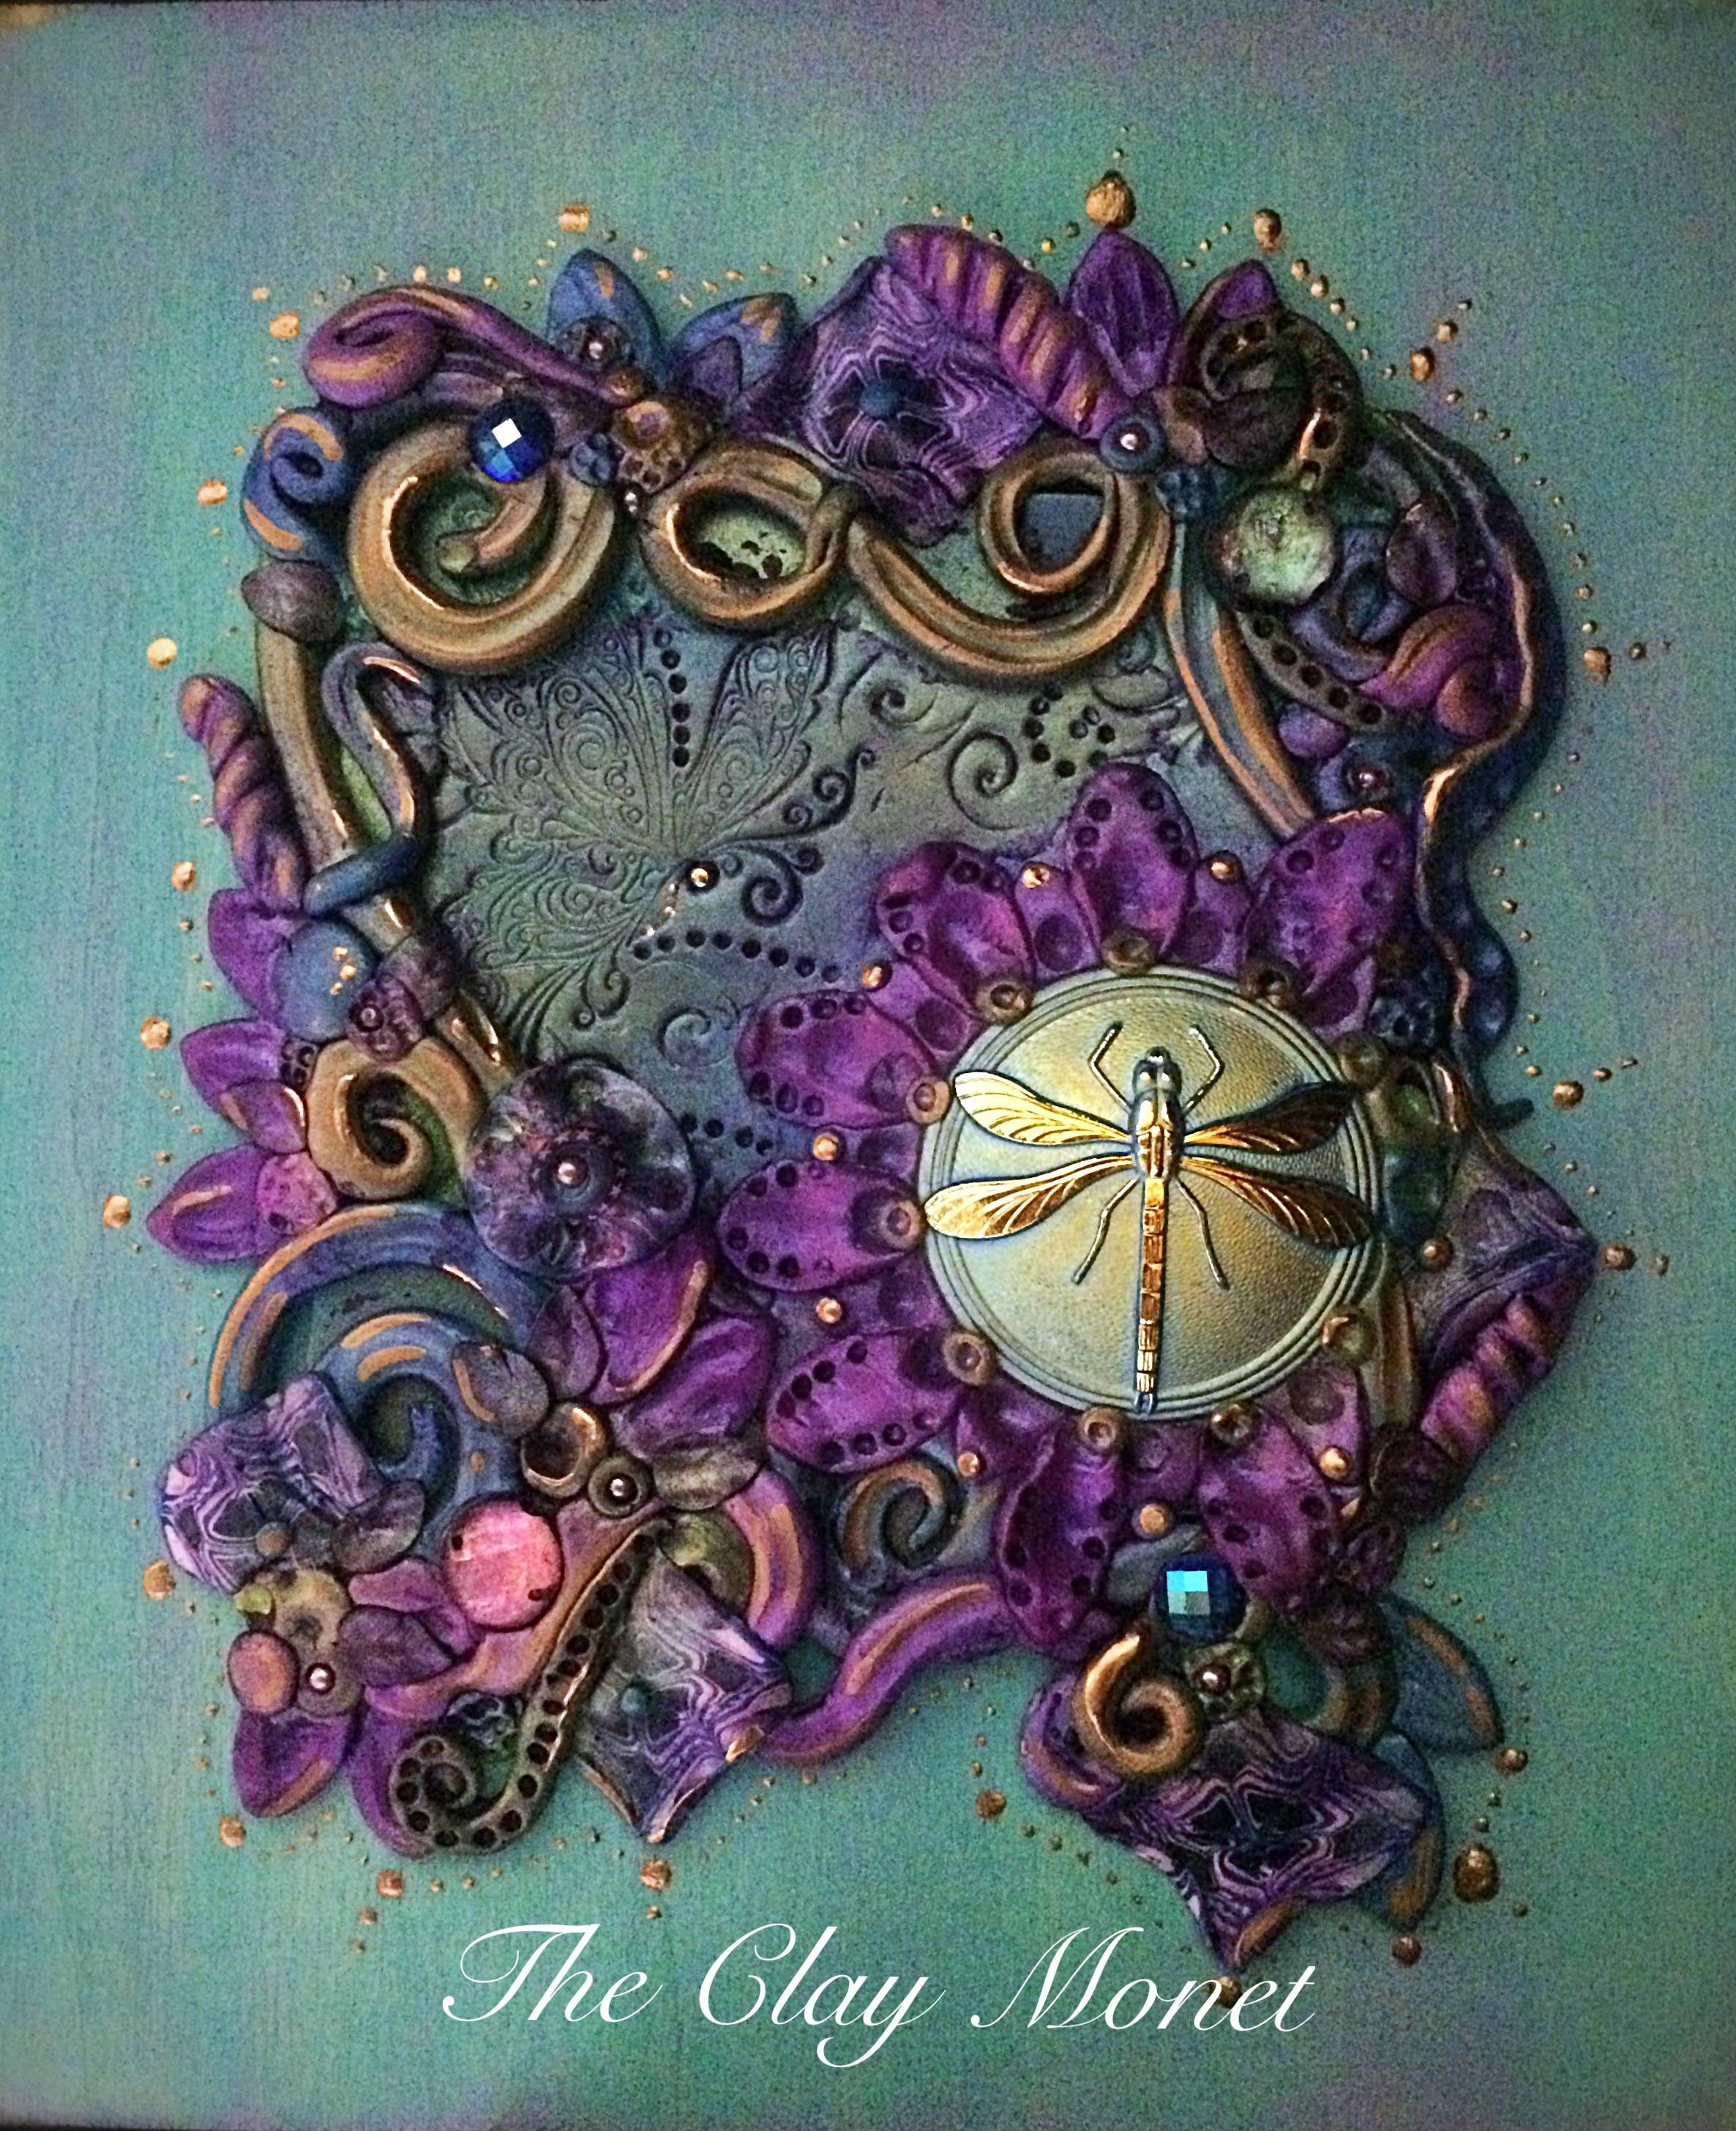 Moon Glow Enchanted Dragonfly Polymer Clay Hanging Wall Plaque Pertaining To Most Current Polymer Clay Wall Art (View 9 of 20)